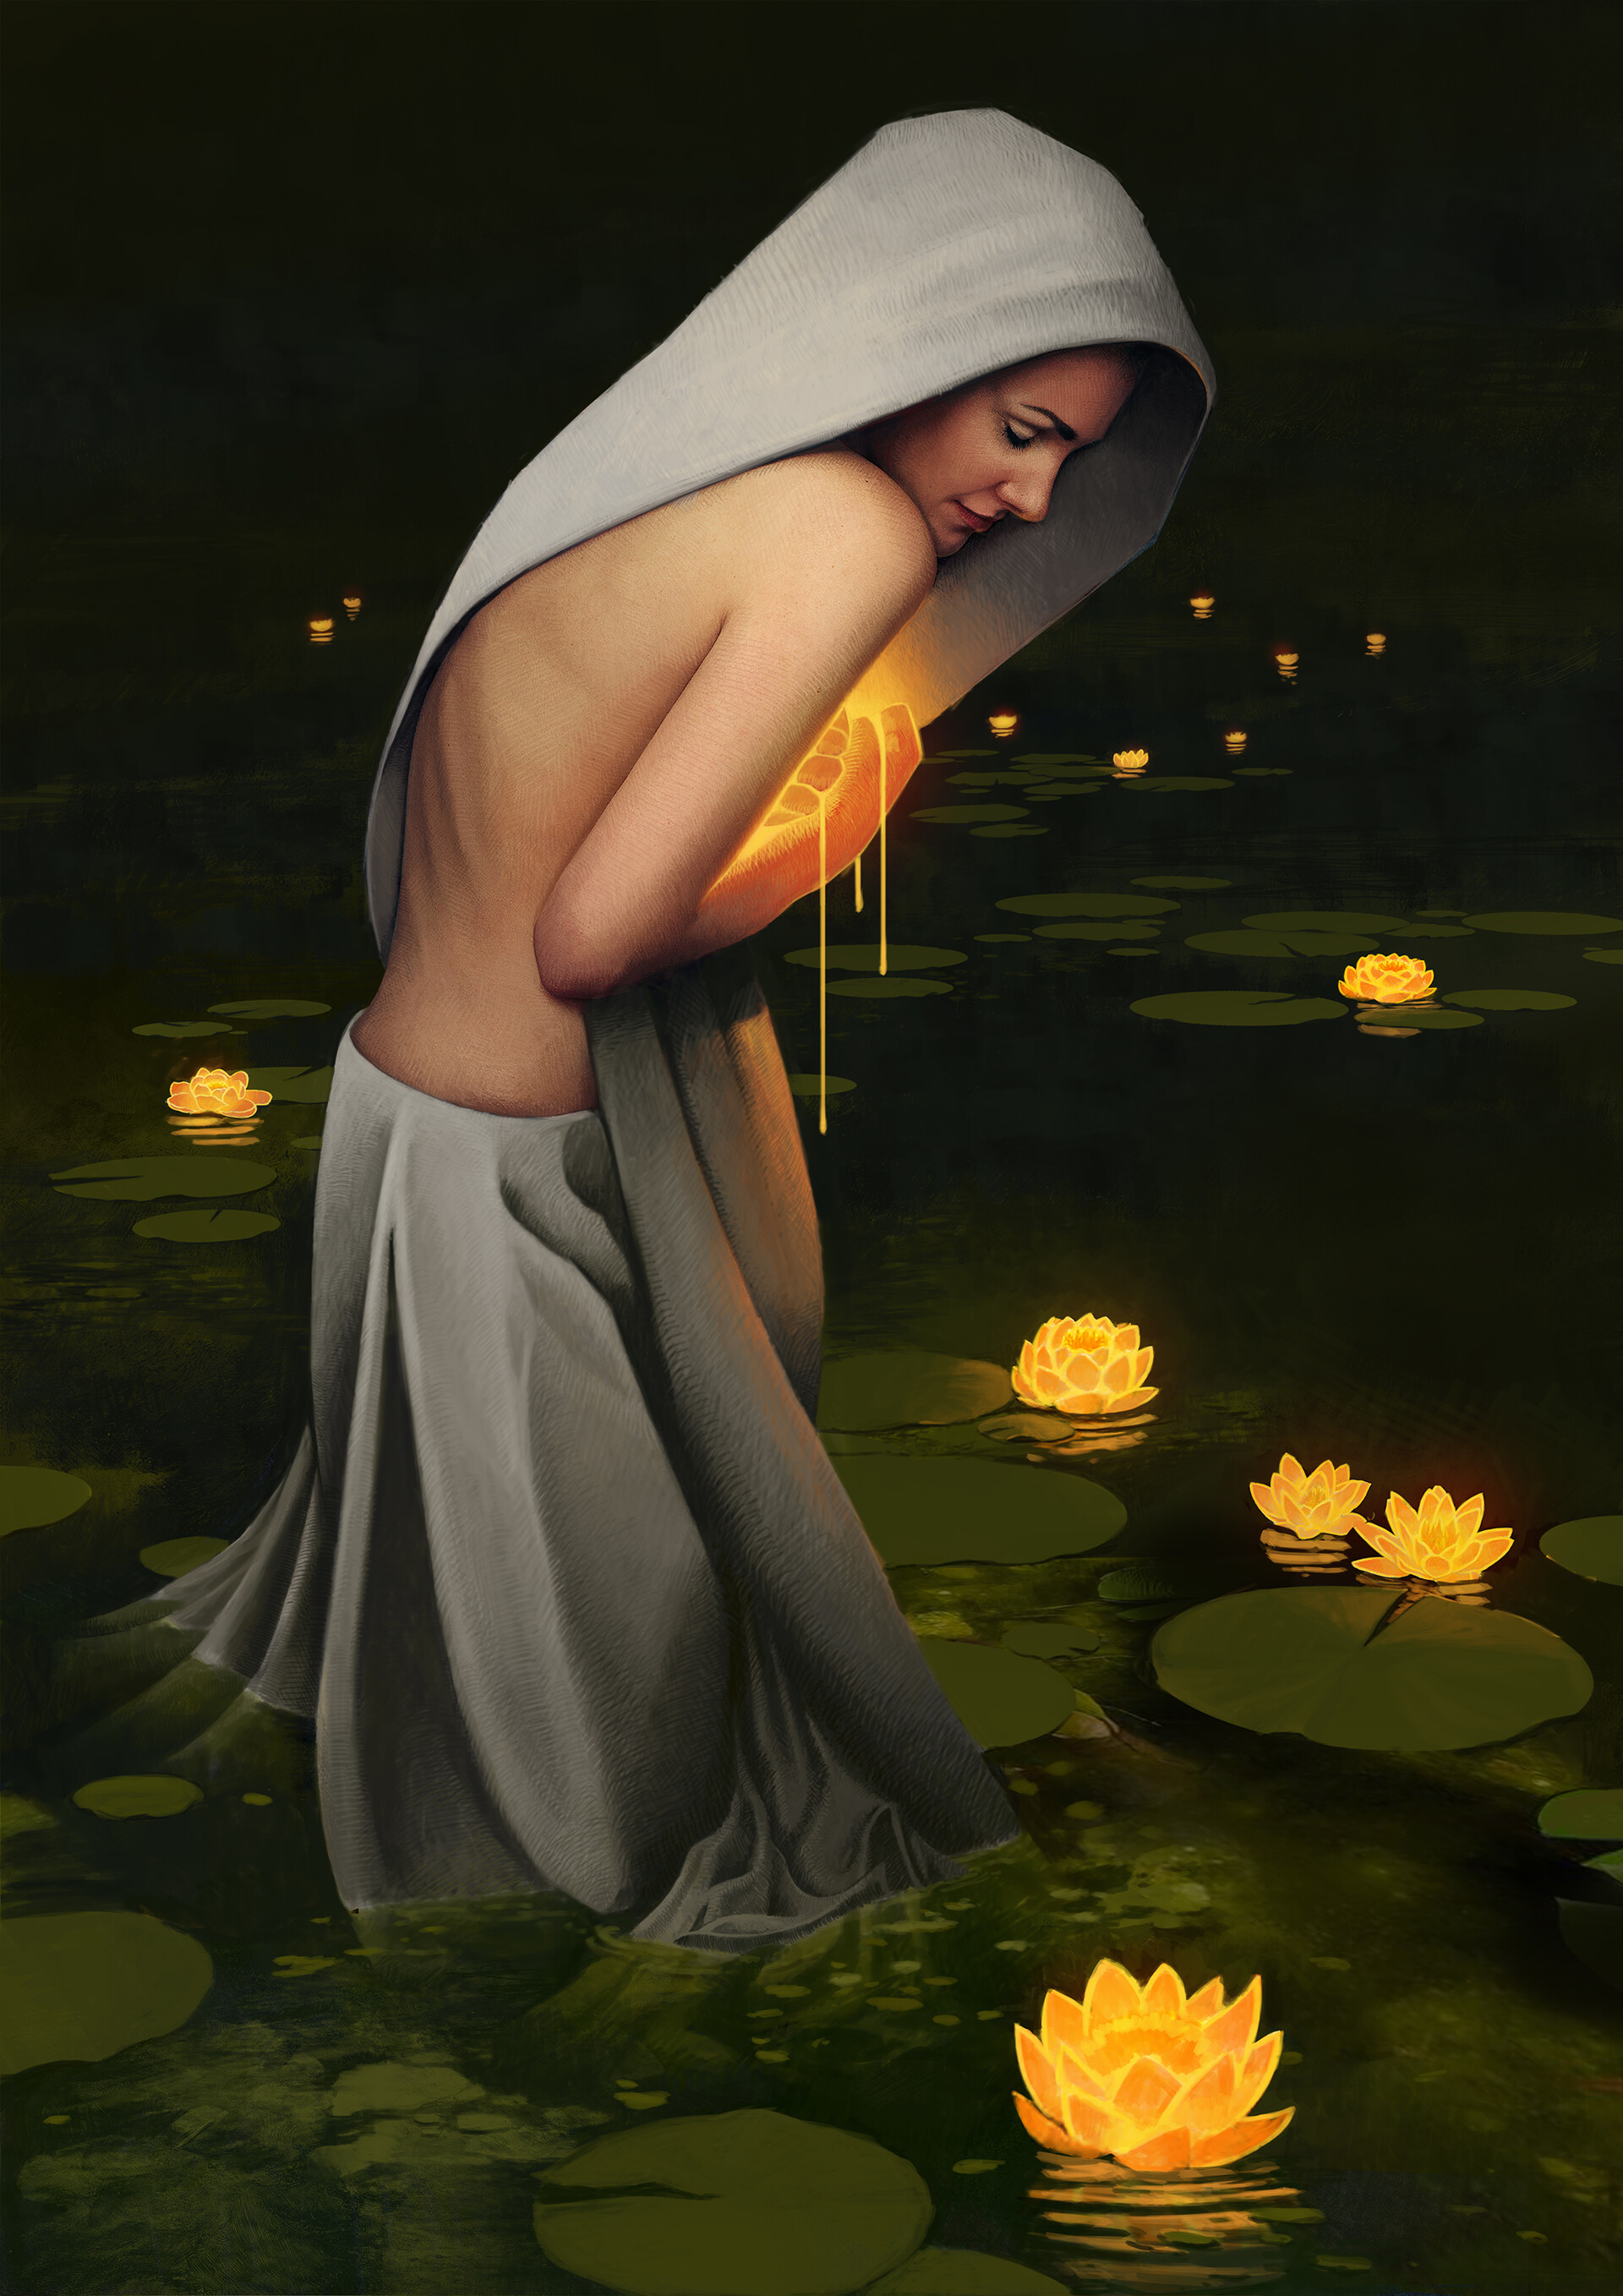 Duncan halleck lady of the golden lily